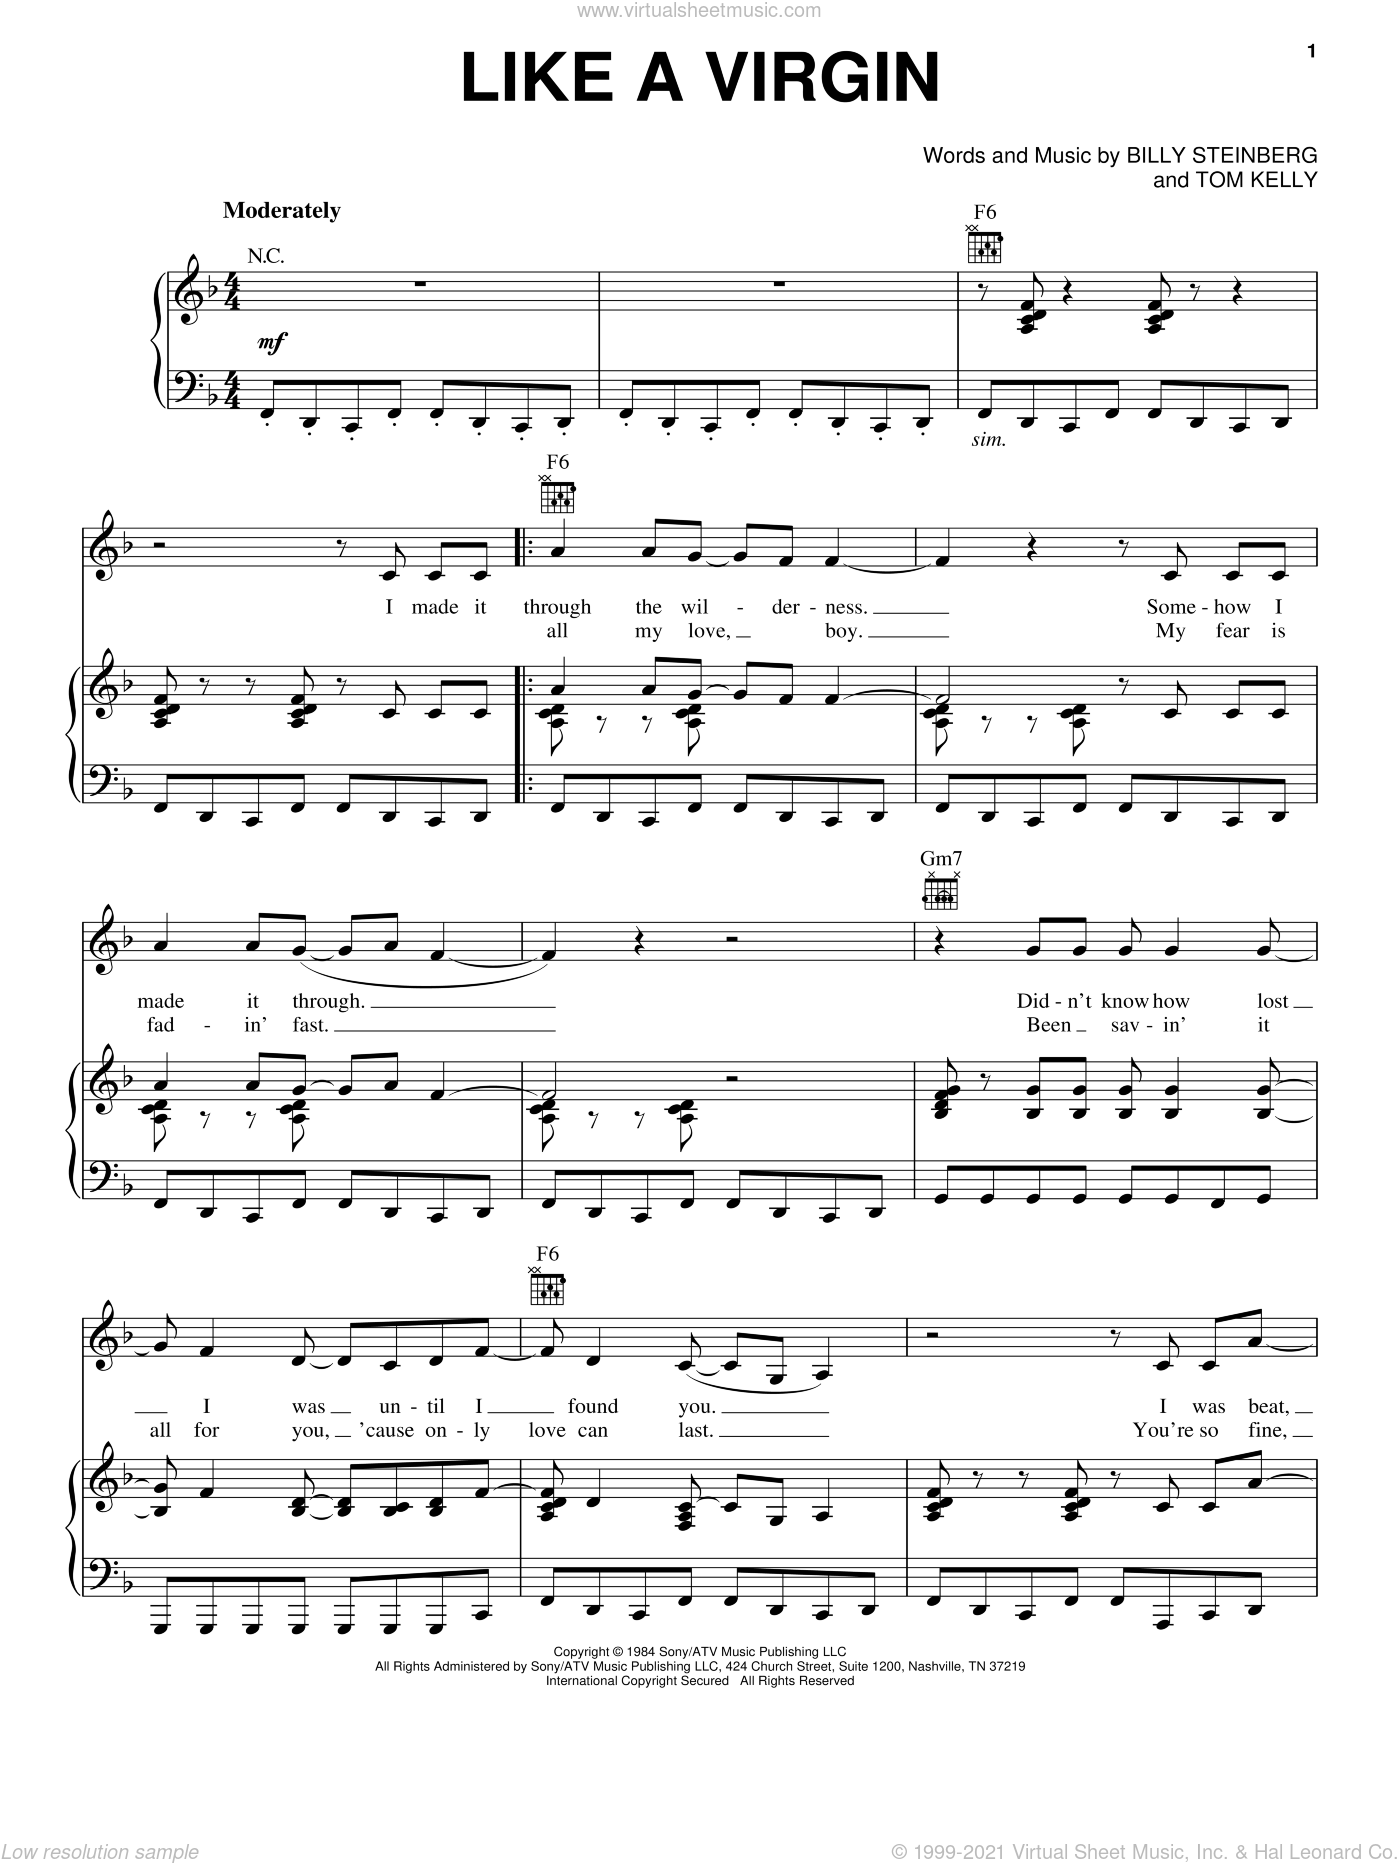 Like A Virgin sheet music for voice, piano or guitar by Tom Kelly